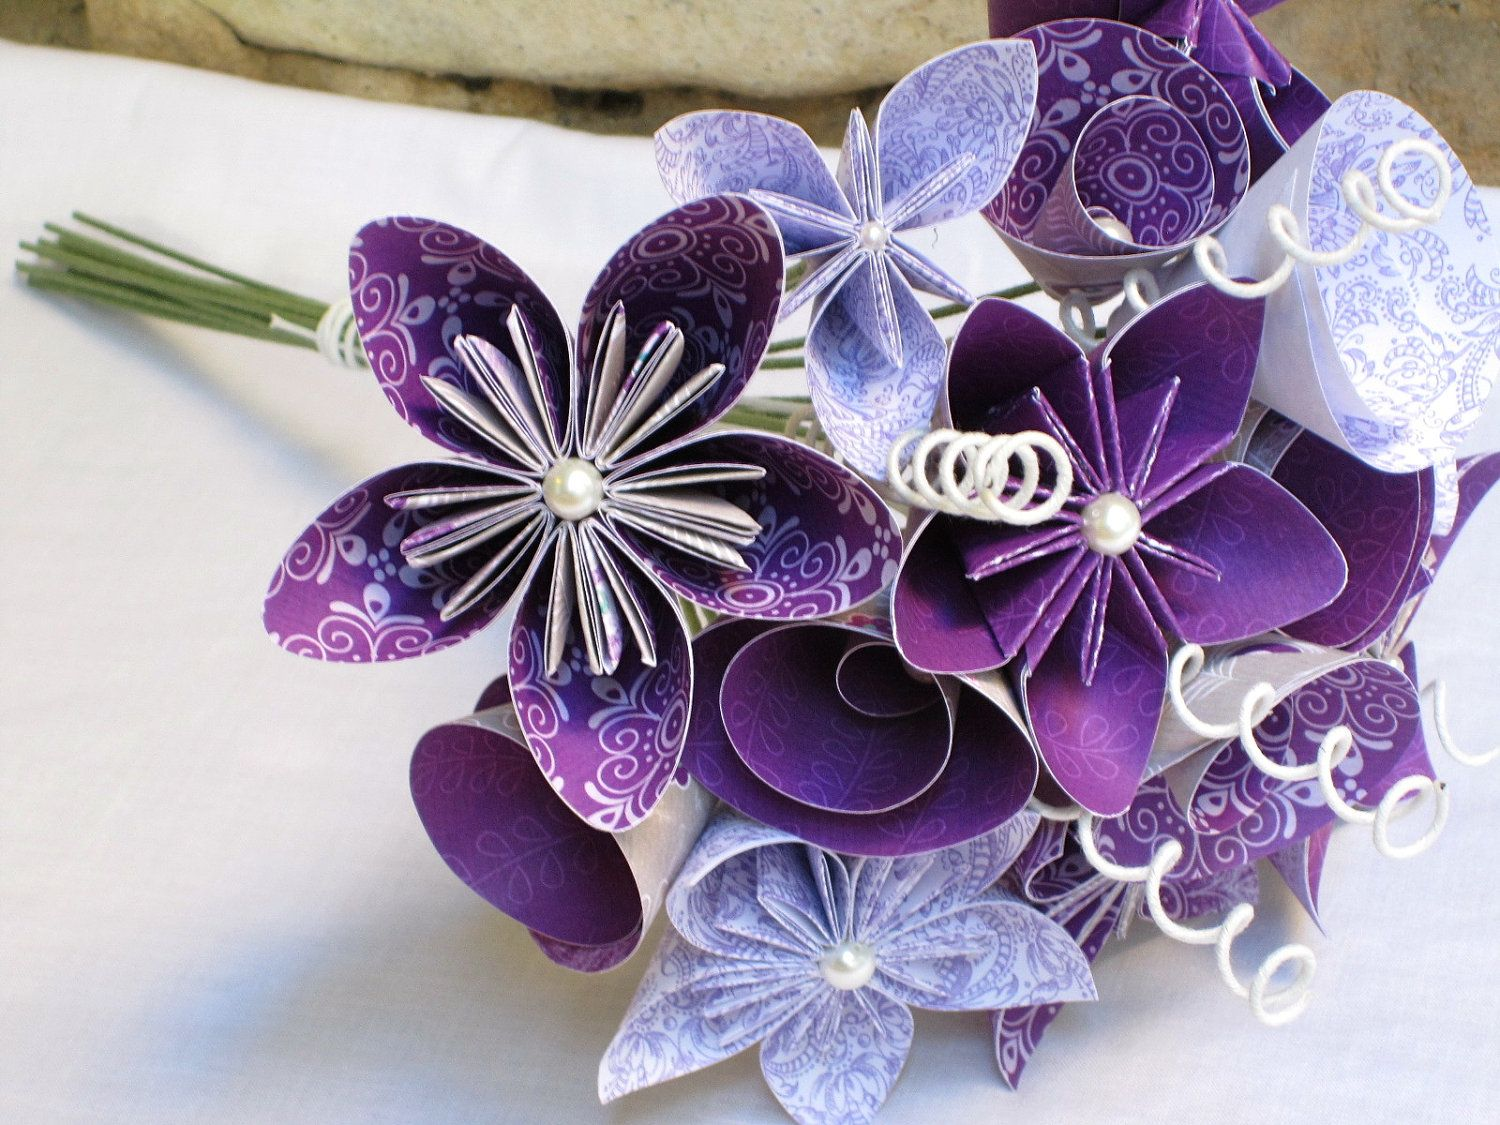 Origami Paper Flower Wedding Bouquet In Plum Posy By Onlyverysmall 112 00 Usd Via Etsy